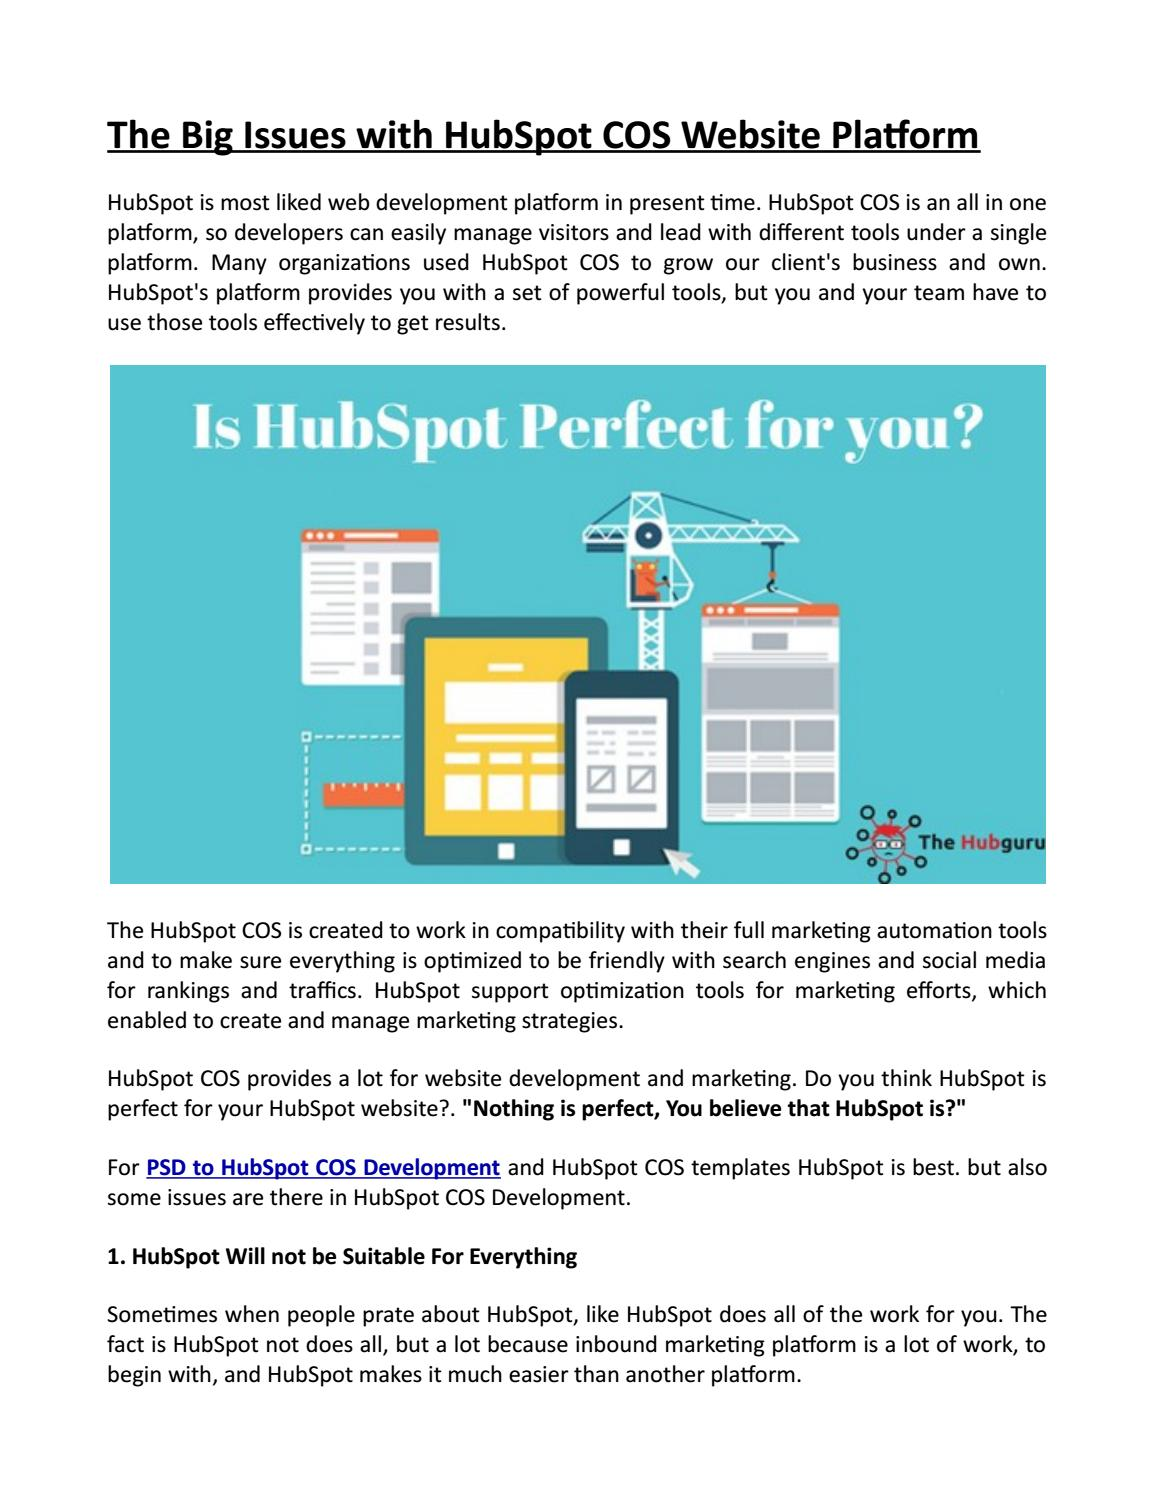 The big issues with hubspot cos website platform by The Hub Guru - issuu